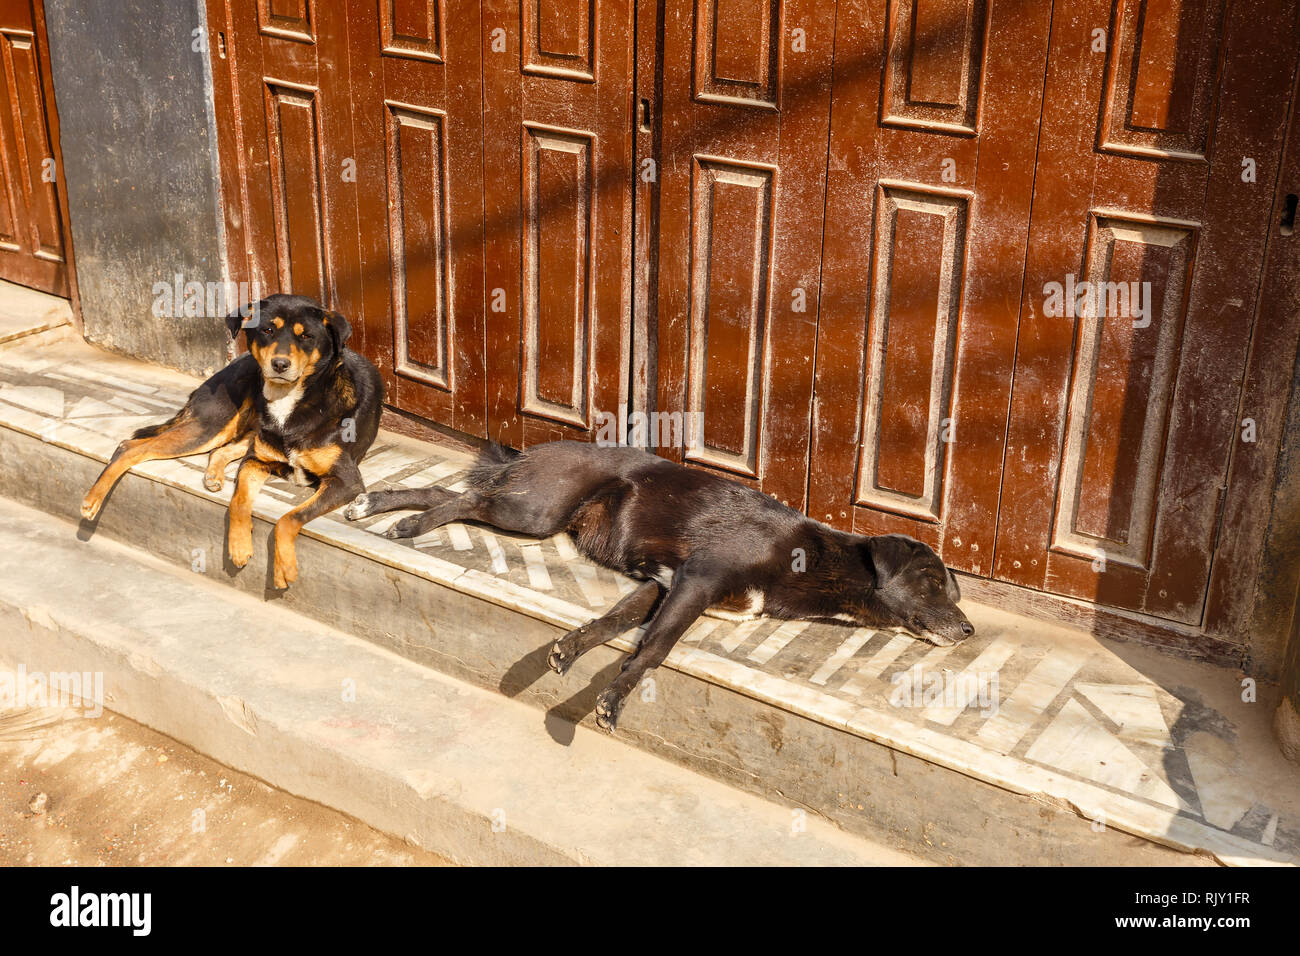 two black dogs lying on the porch at the door of the house, Kathmandu, Nepal - Stock Image